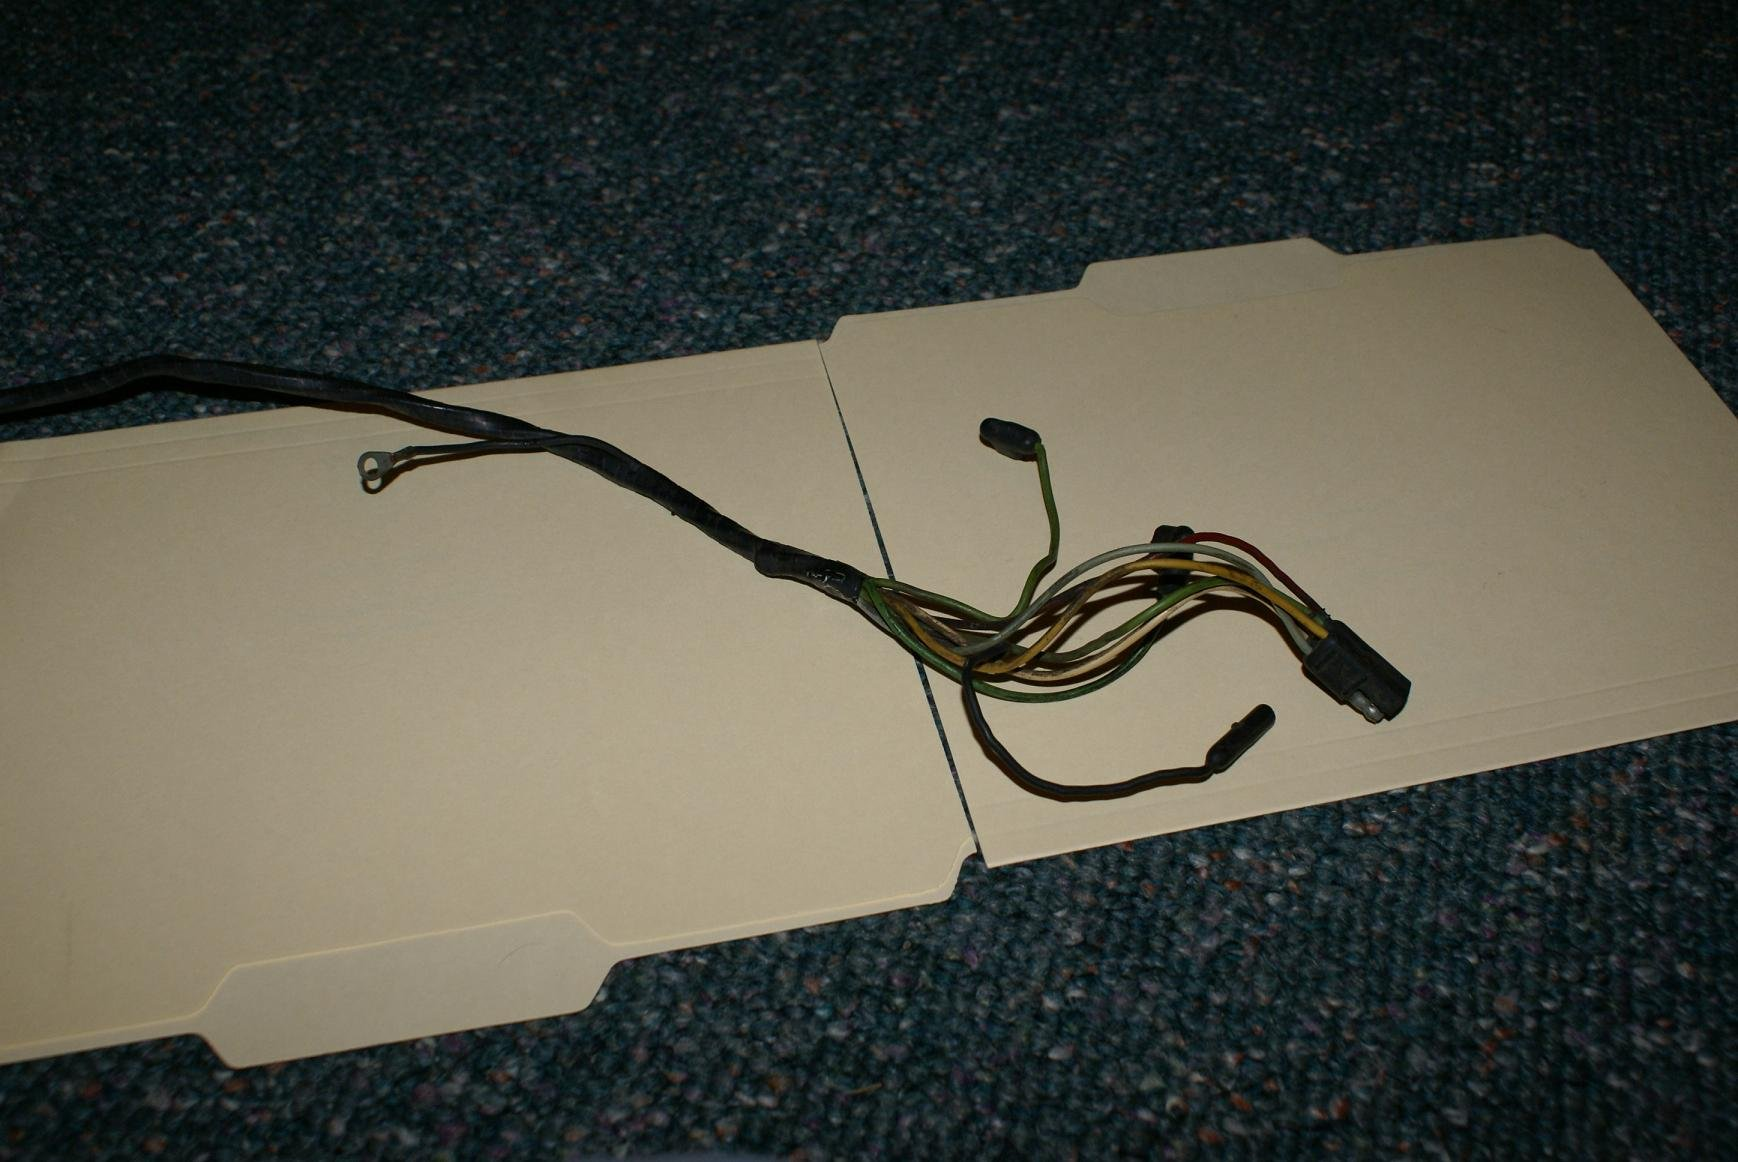 Two-speed Wiper Motor Harness For 1966 Mustang